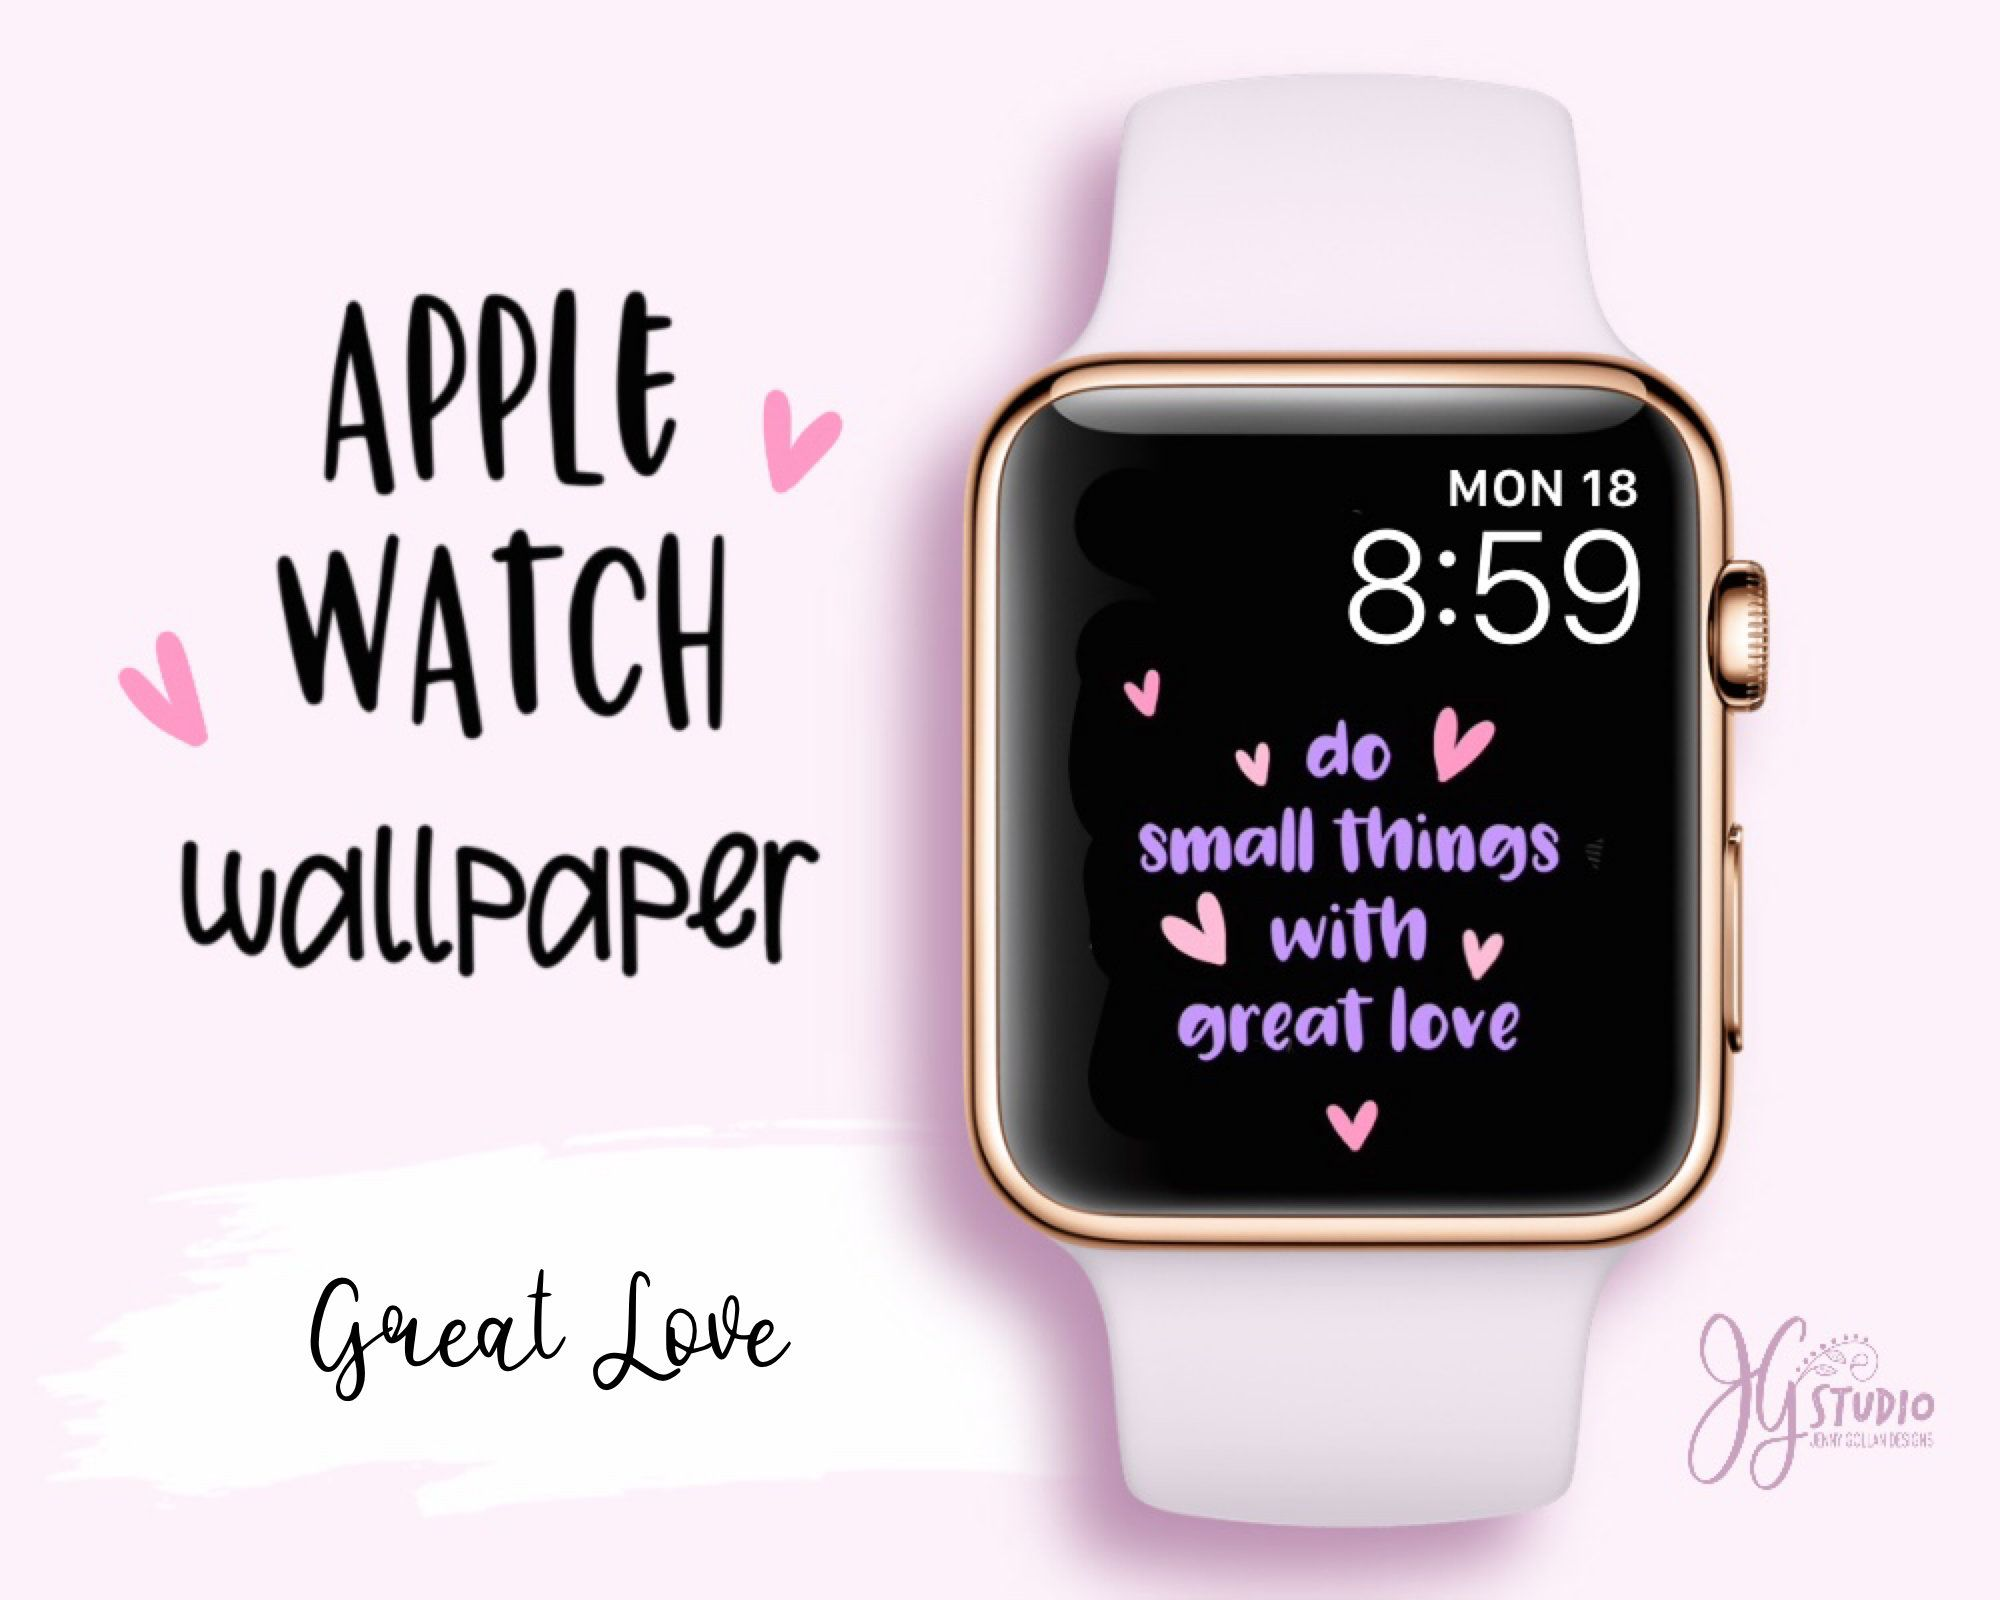 Apple Watch Wallpaper Great Love For Your Apple Watch Face Applewatch Applewatchface Applewatchwallpaper Apple Watch Faces Apple Watch Wallpaper Apple Watch